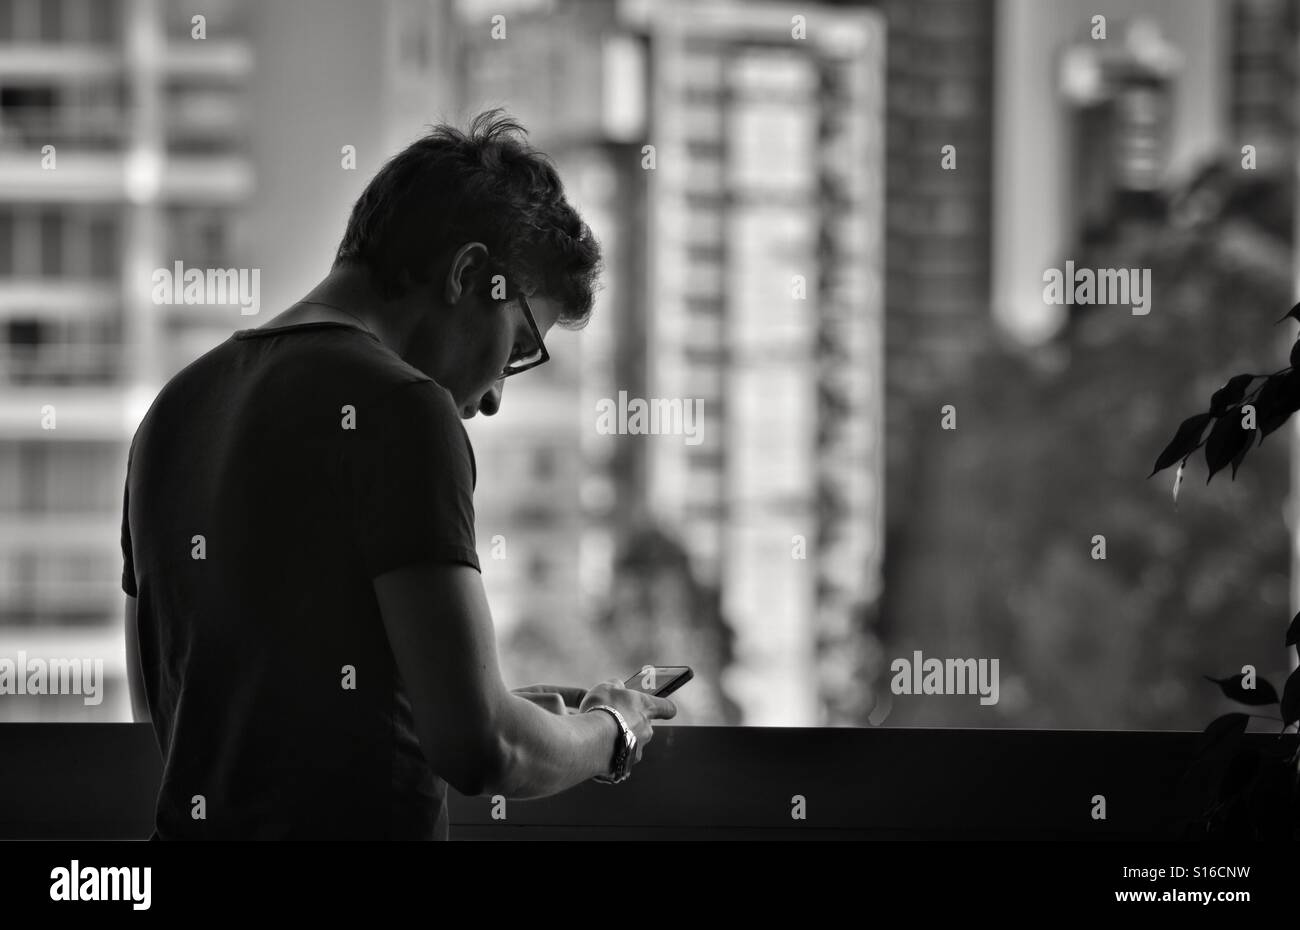 Man on window, searching on the phone - Stock Image